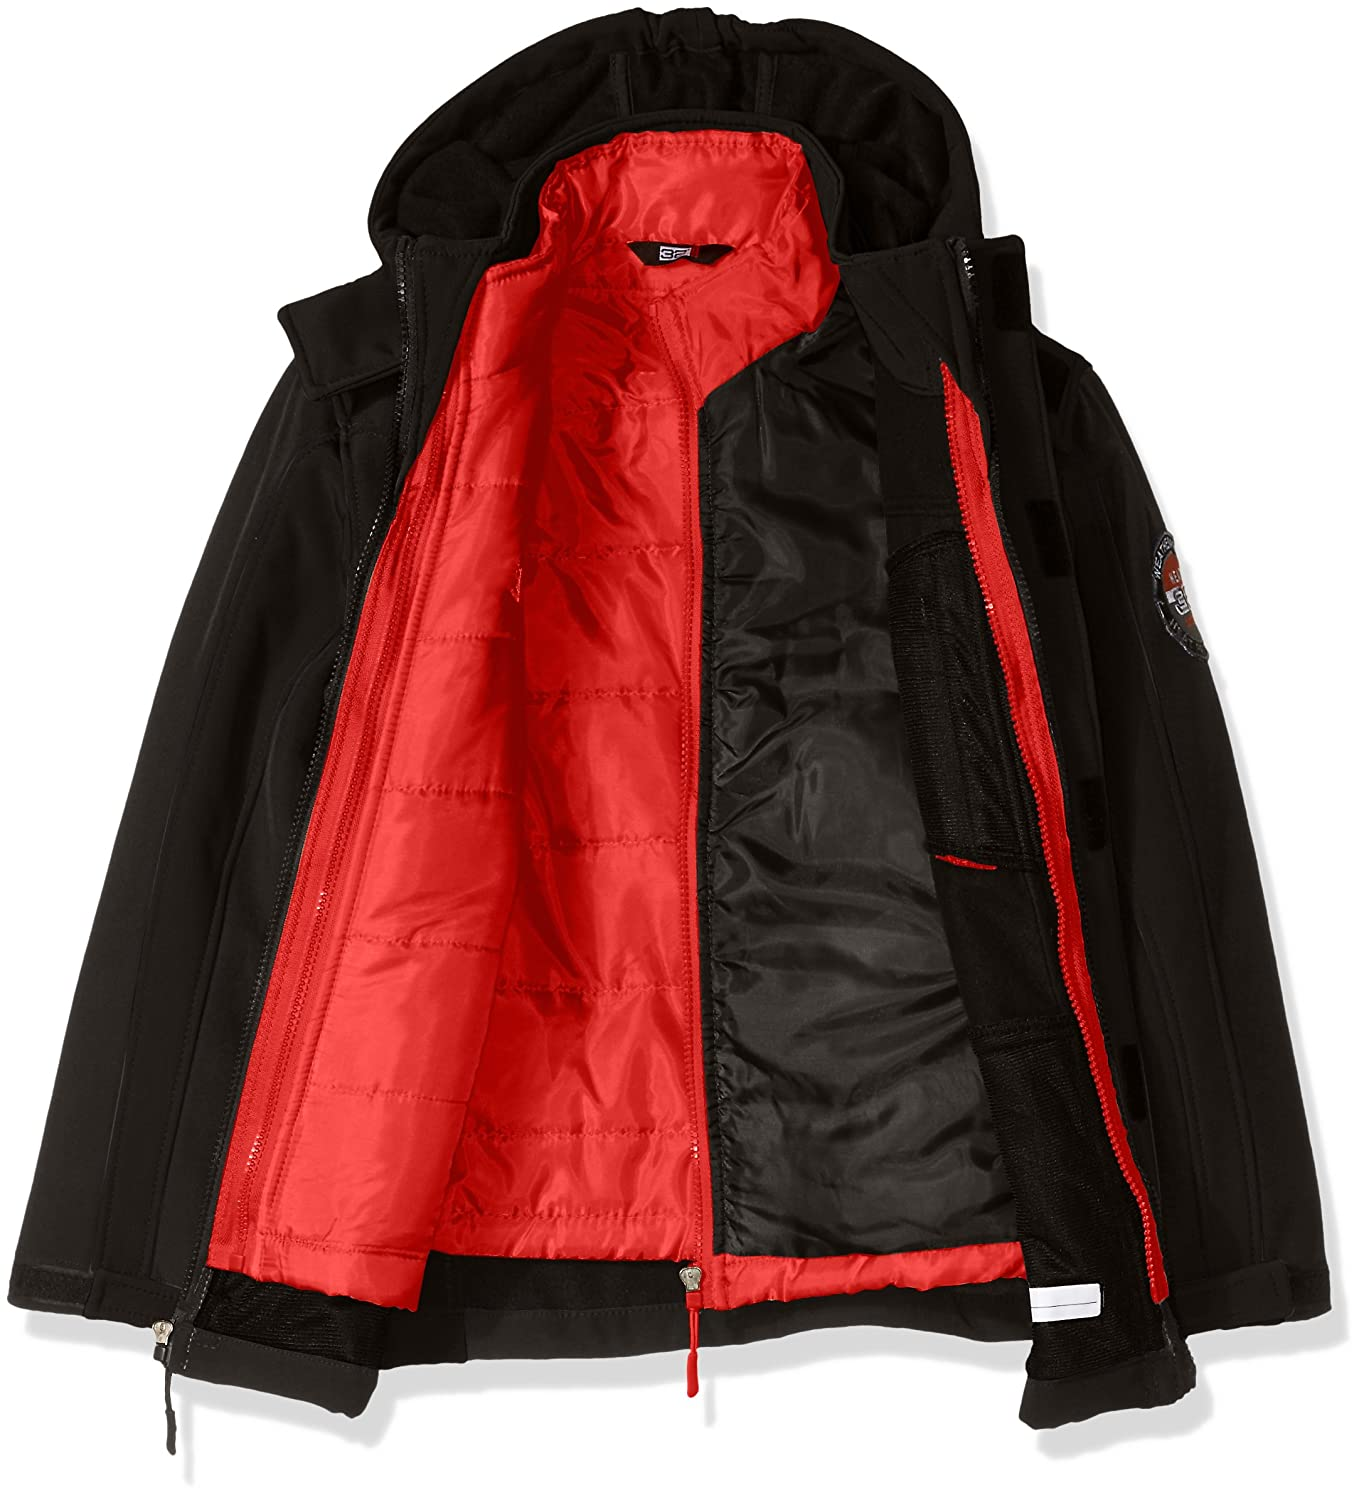 32 DEGREES Boys Outerwear Jacket More Styles Available